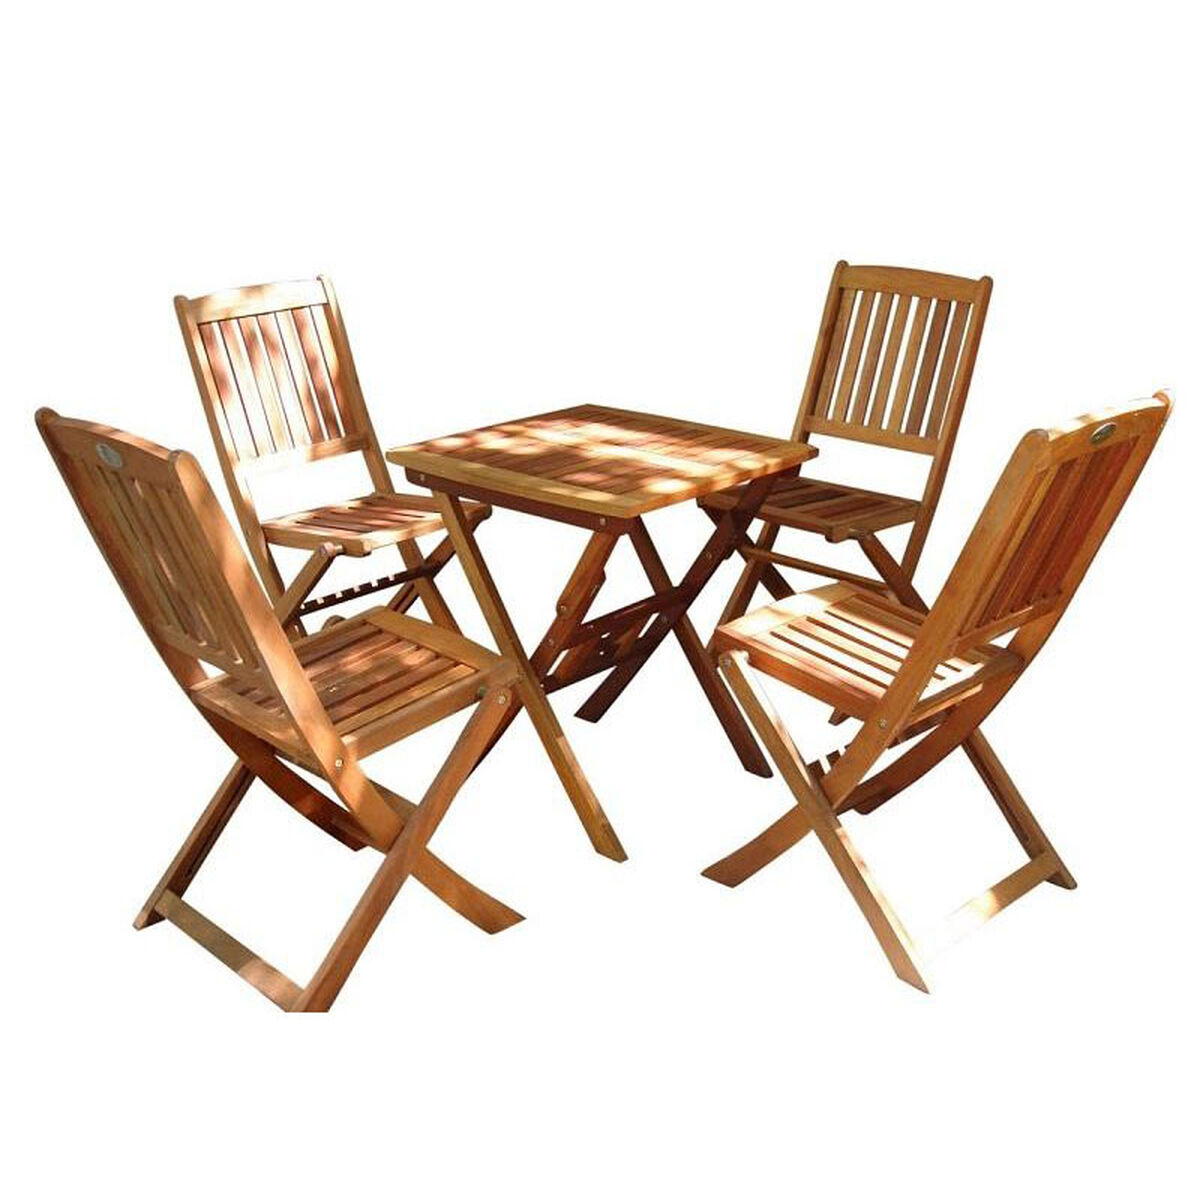 Our Malibu 5 Piece Outdoor Wood Folding Bistro Set With Table And 4 Chairs Is